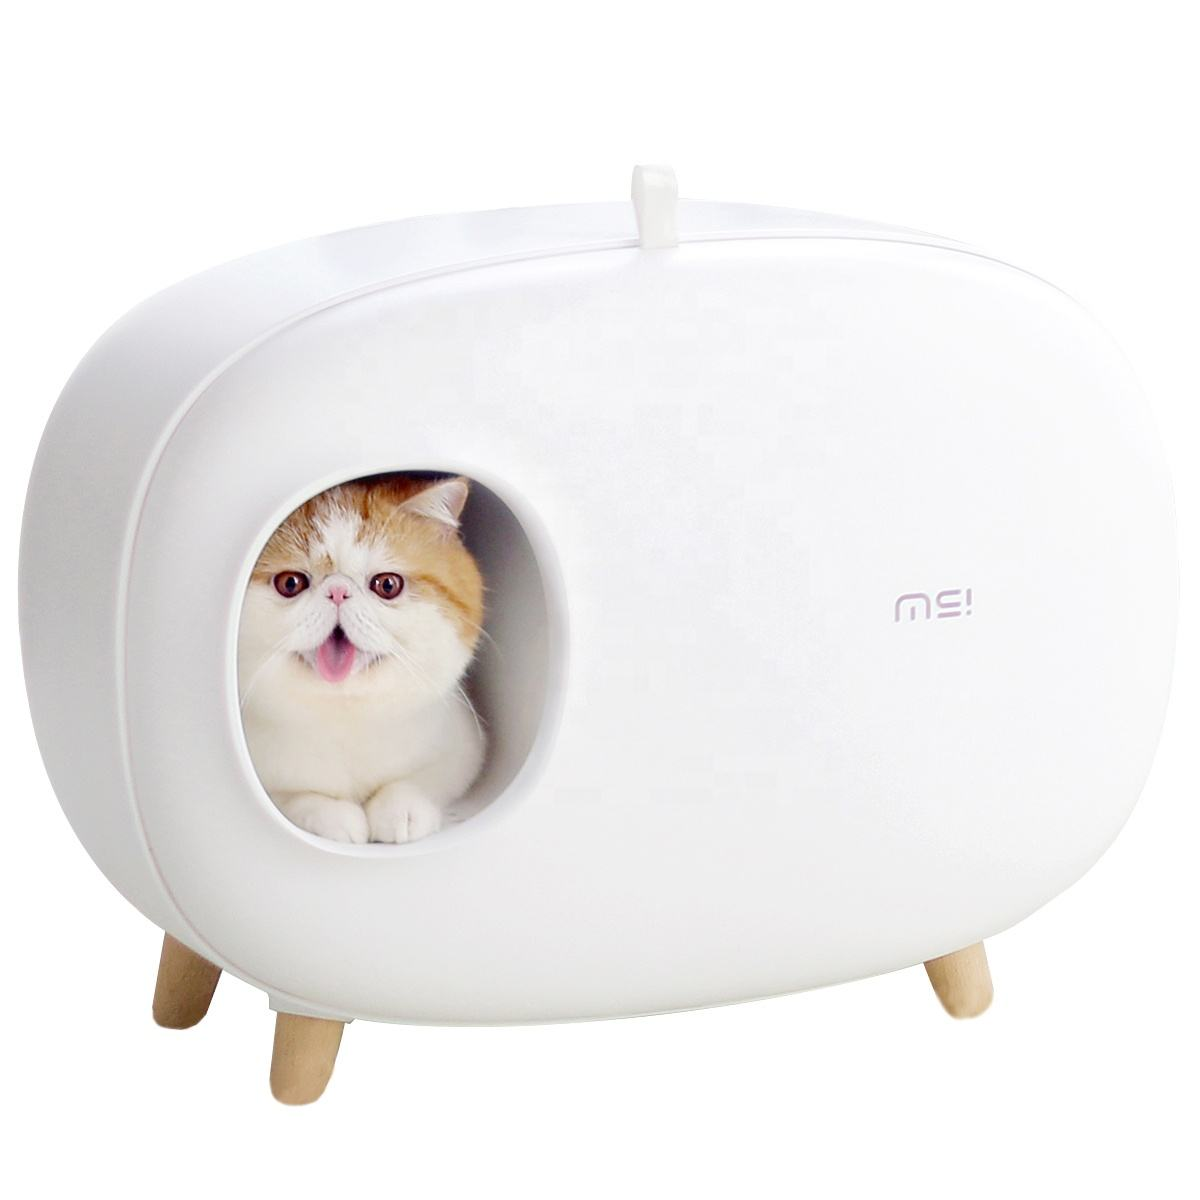 Hot in Europe wholesale pet cleaning enclosed training cat litter box fashion and lightweight toilets for cats high quality